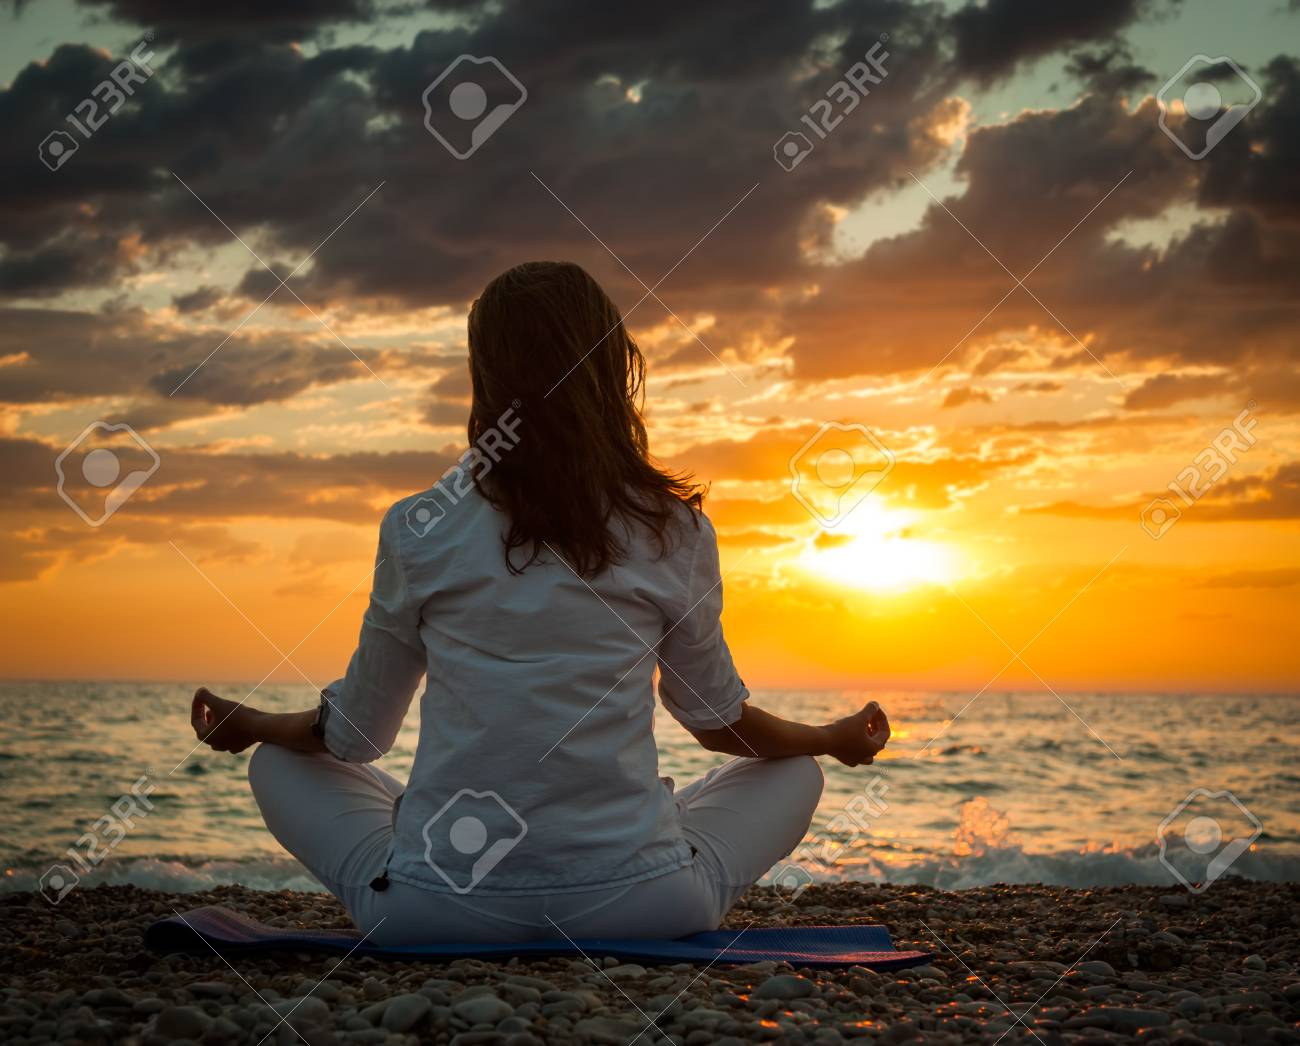 Woman Practicing Yoga by the Sea at Sunset. Rear View. Dramatic Sky. Healthy Lifestyle Concept. - 36892669